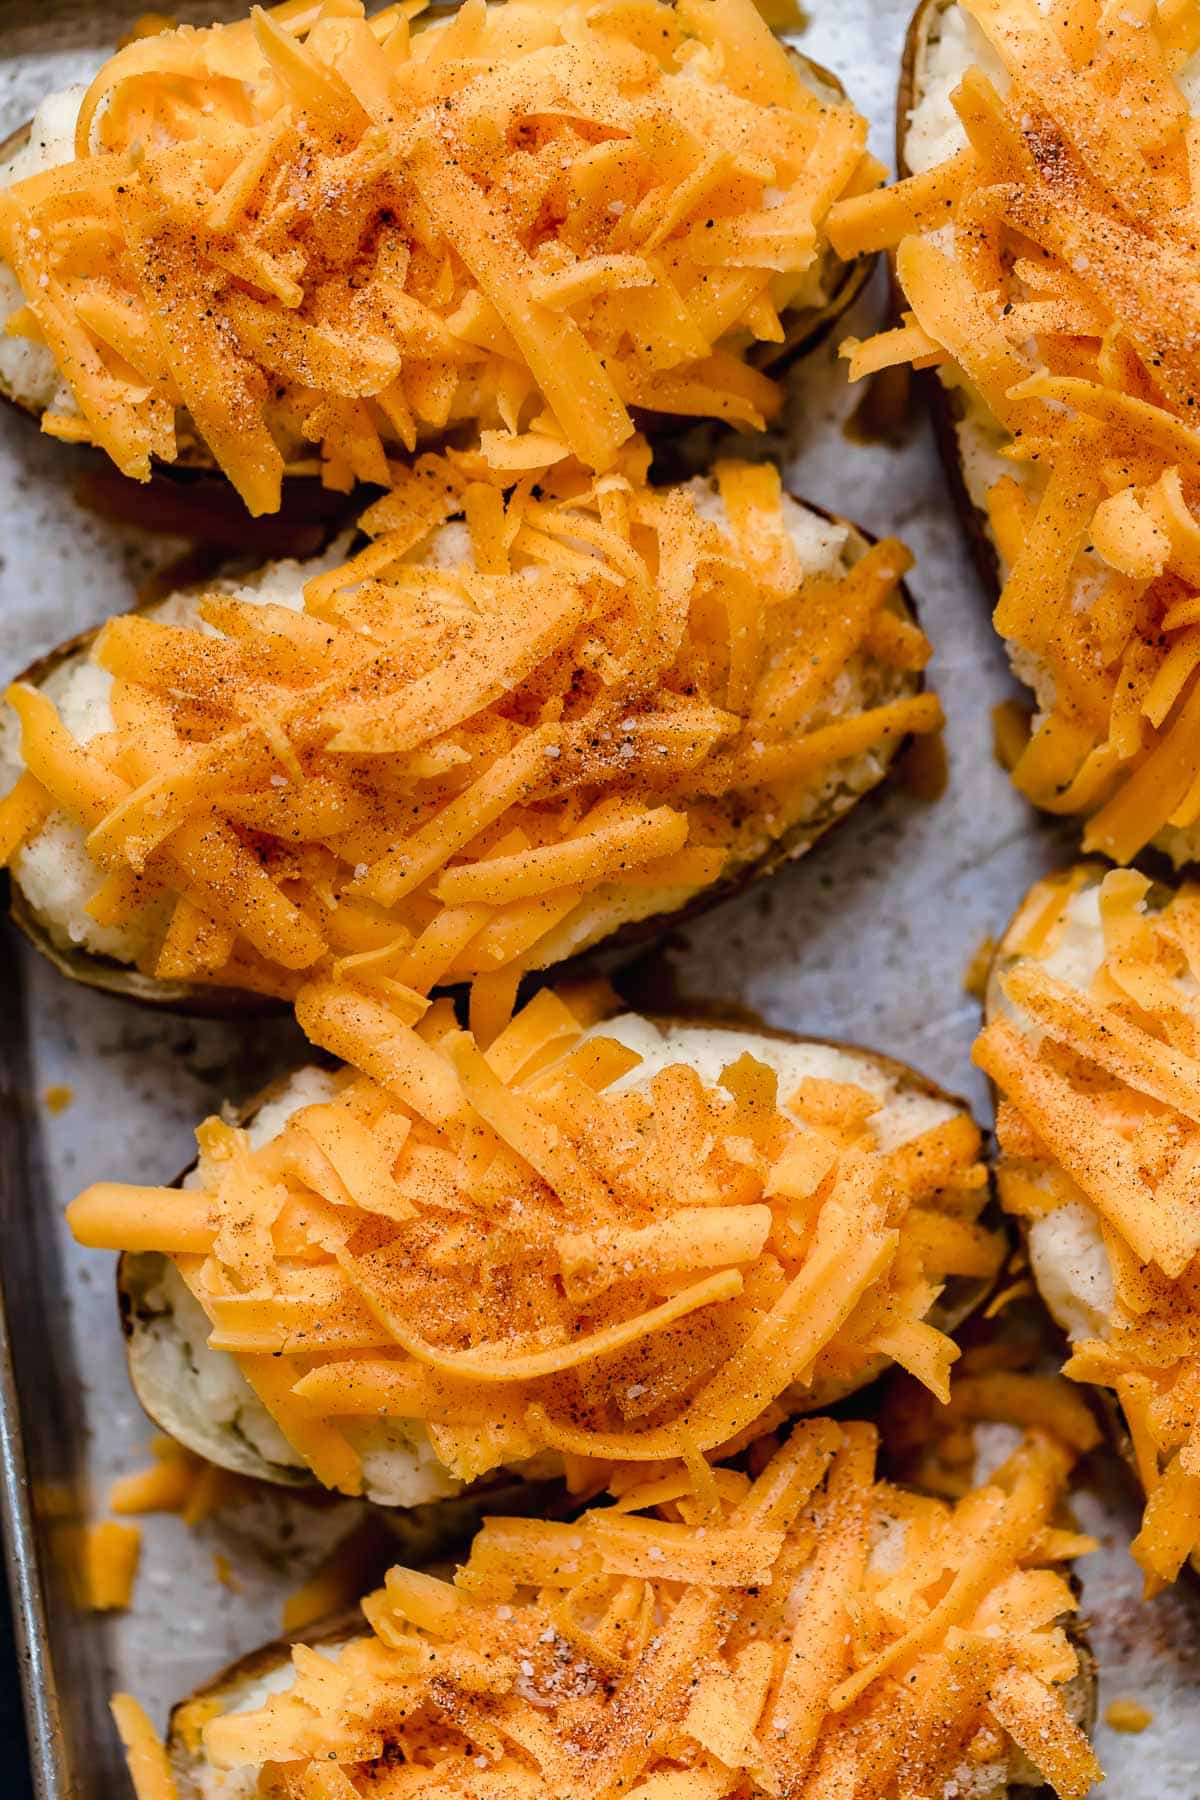 Twice baked potatoes filled with mashed potatoes and topped with shredded cheddar and seasoning. Shown before baking.